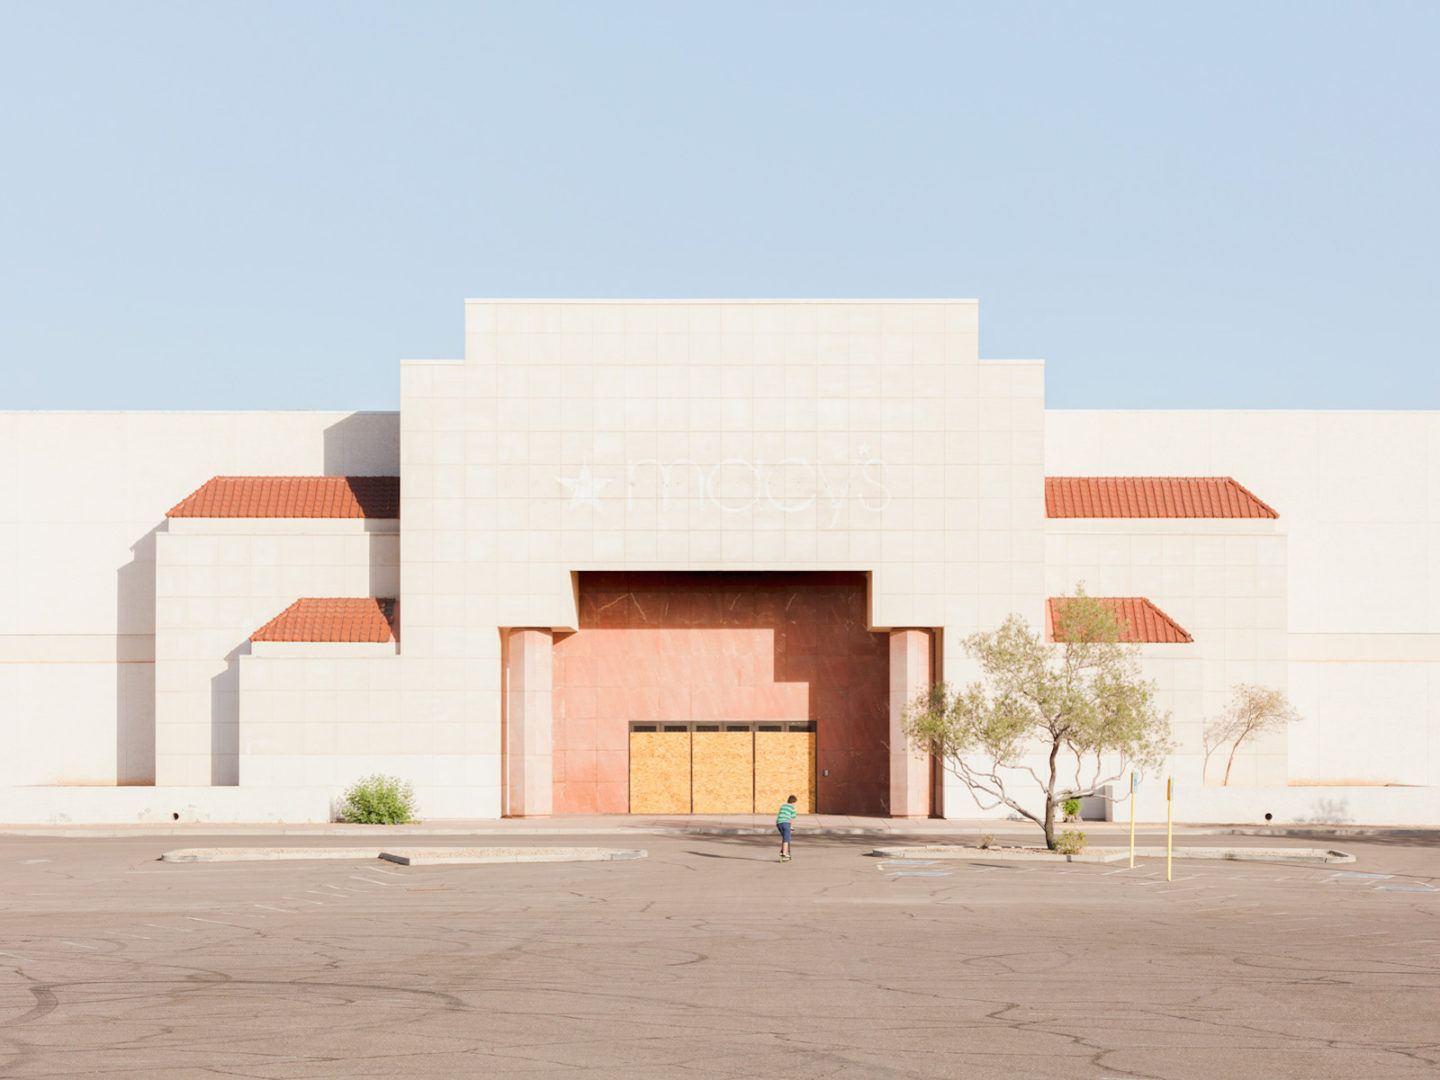 iGNANT-Photography-Jesse-Rieser-The-Retail-Apocalypse-001